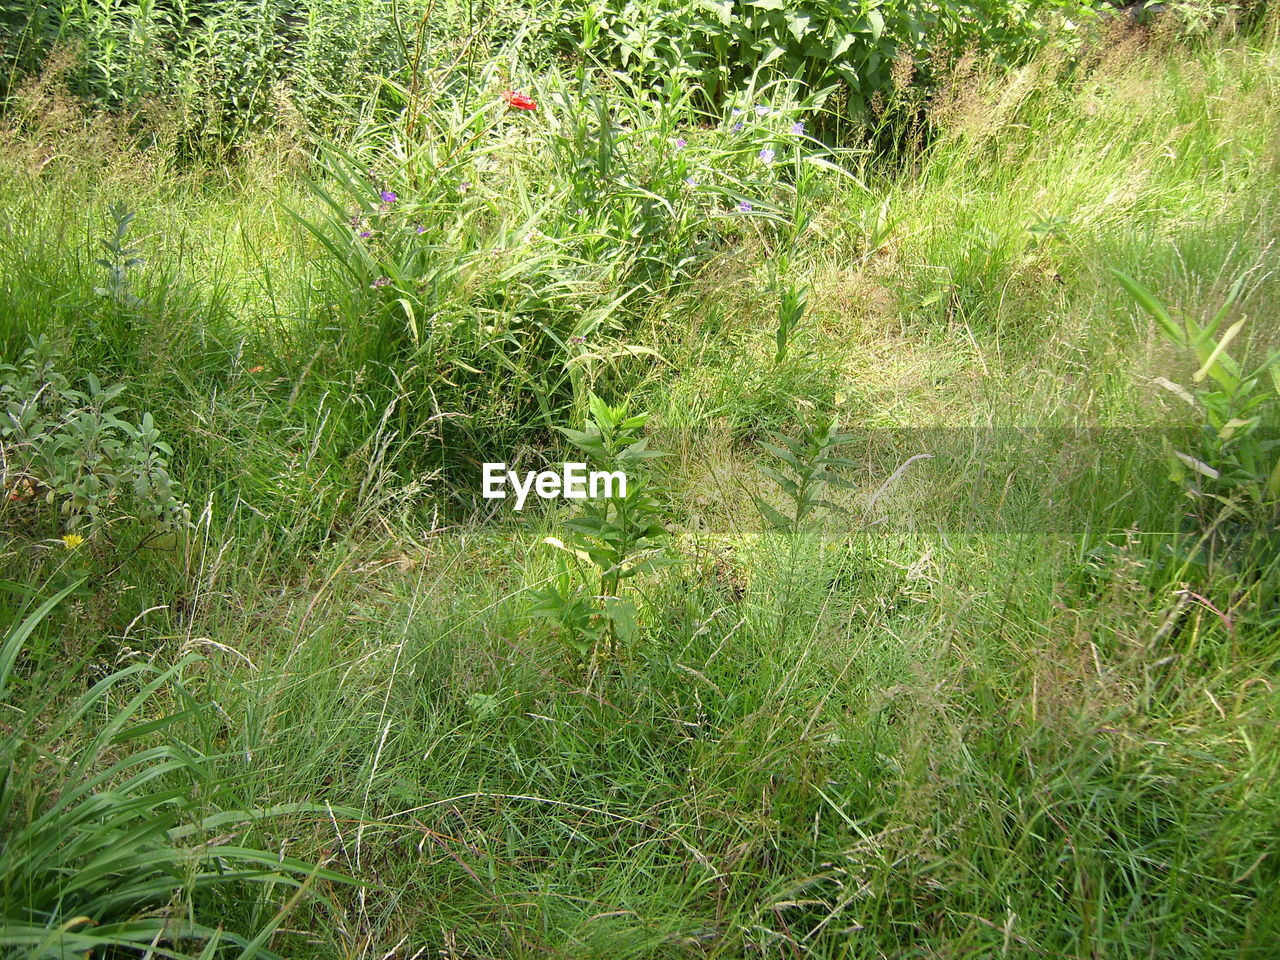 grass, growth, field, nature, green color, plant, outdoors, no people, day, beauty in nature